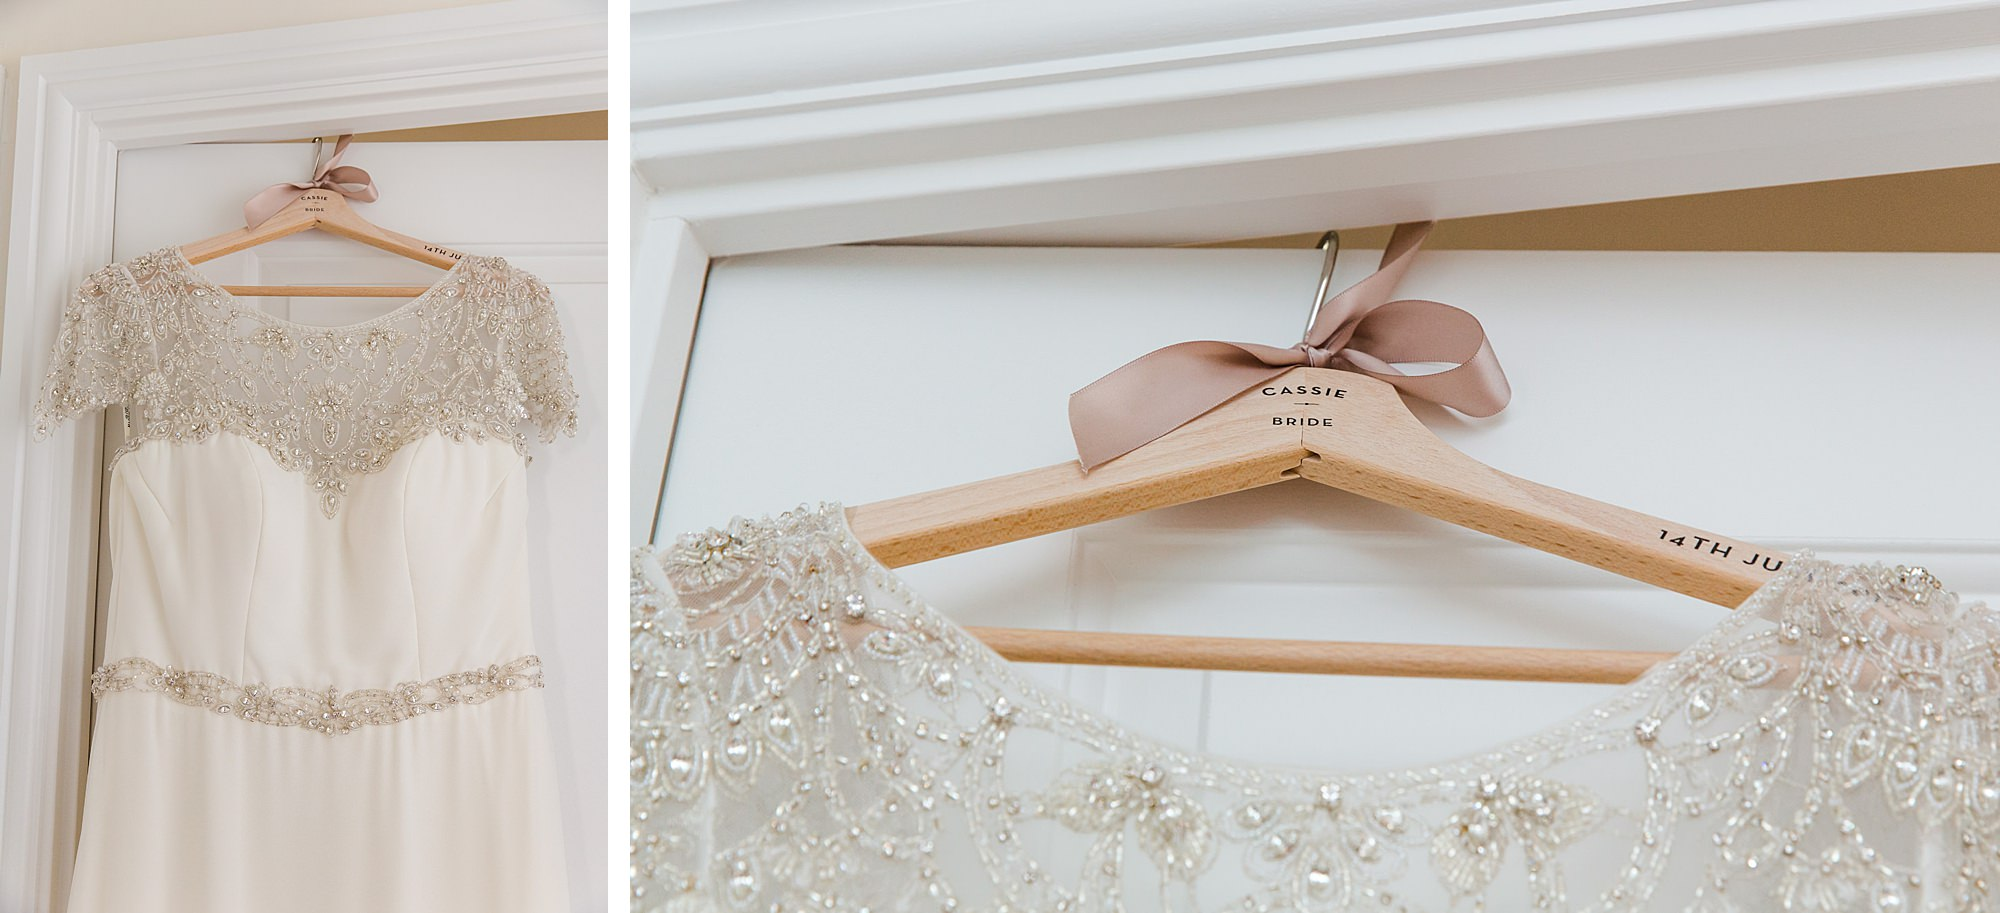 fun outdoor wedding bride's dress on custom hanger